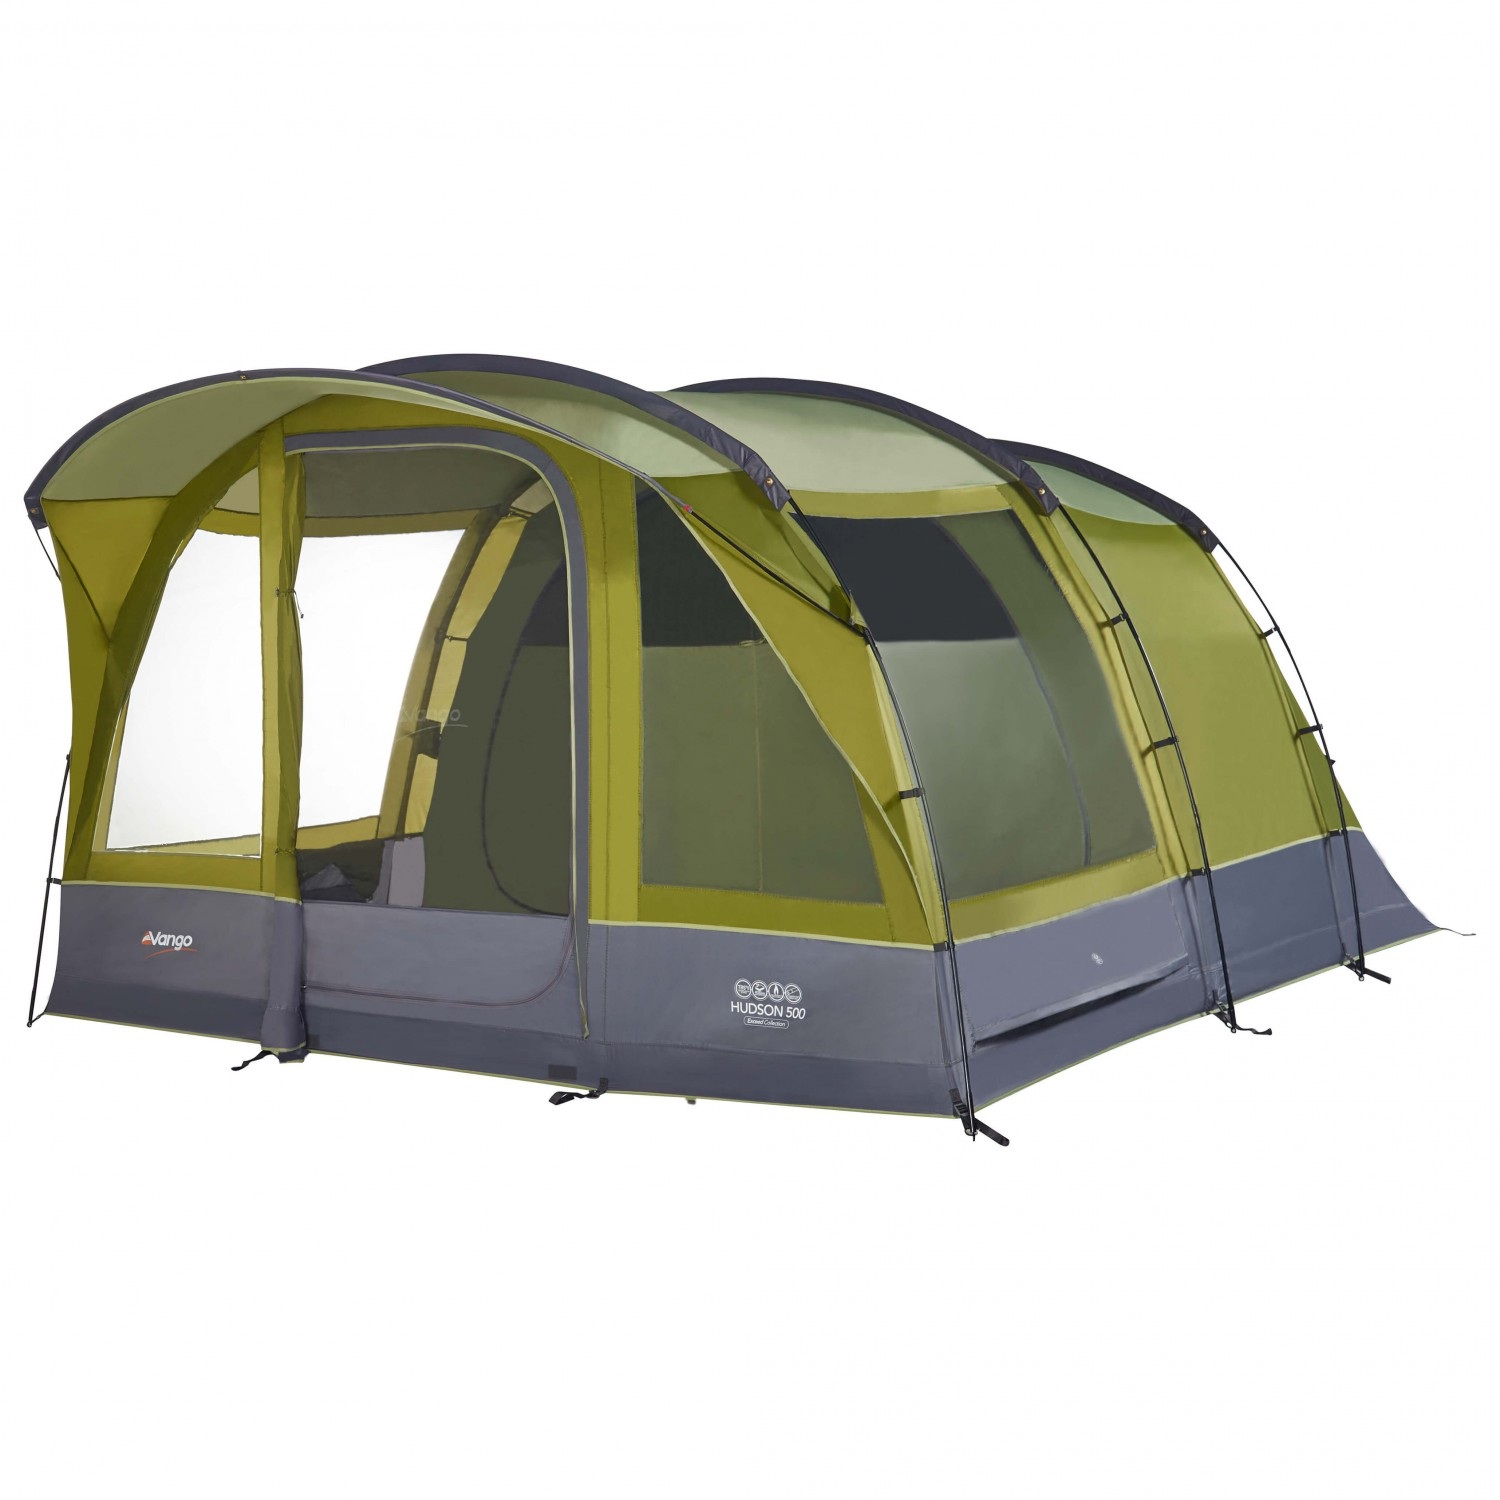 Vango - Hudson 500 - 4-8 man tent  sc 1 st  Alpinetrek & Vango Hudson 500 - 4-8 Man Tent | Free UK Delivery | Alpinetrek.co.uk